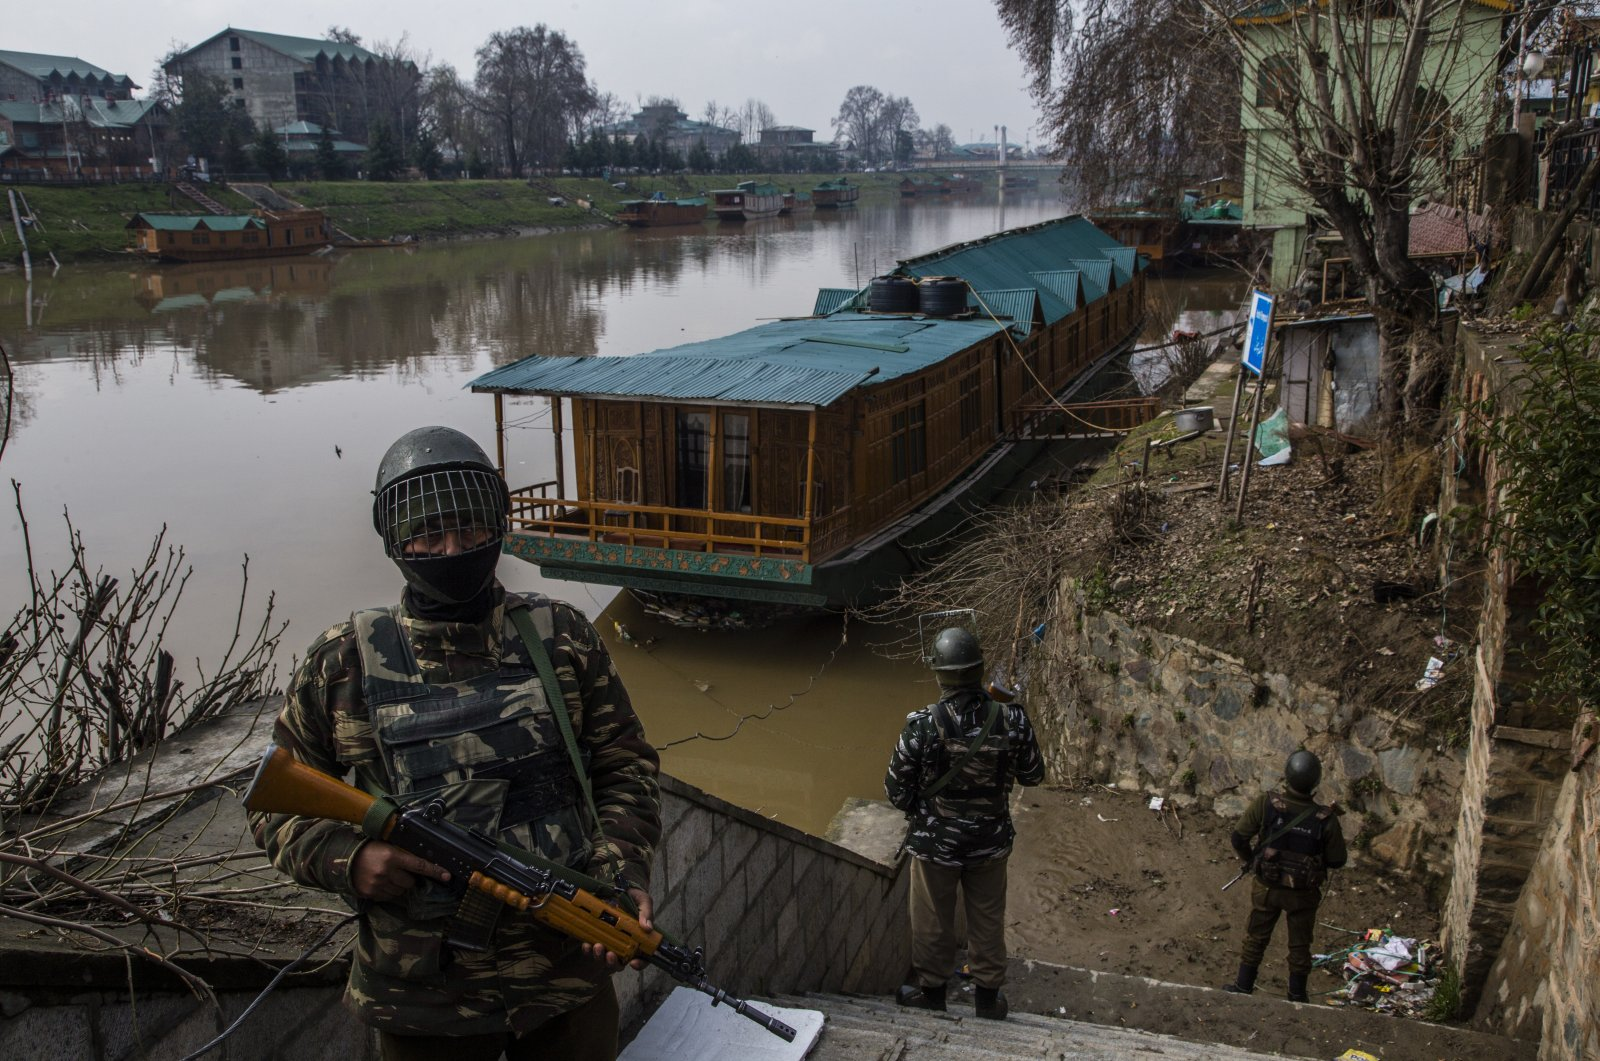 Indian forces stand guard on the bank of the Jehlum river, in Srinagar, Indian-administered Kashmir, March 15, 2021. (Photo by Getty Images)